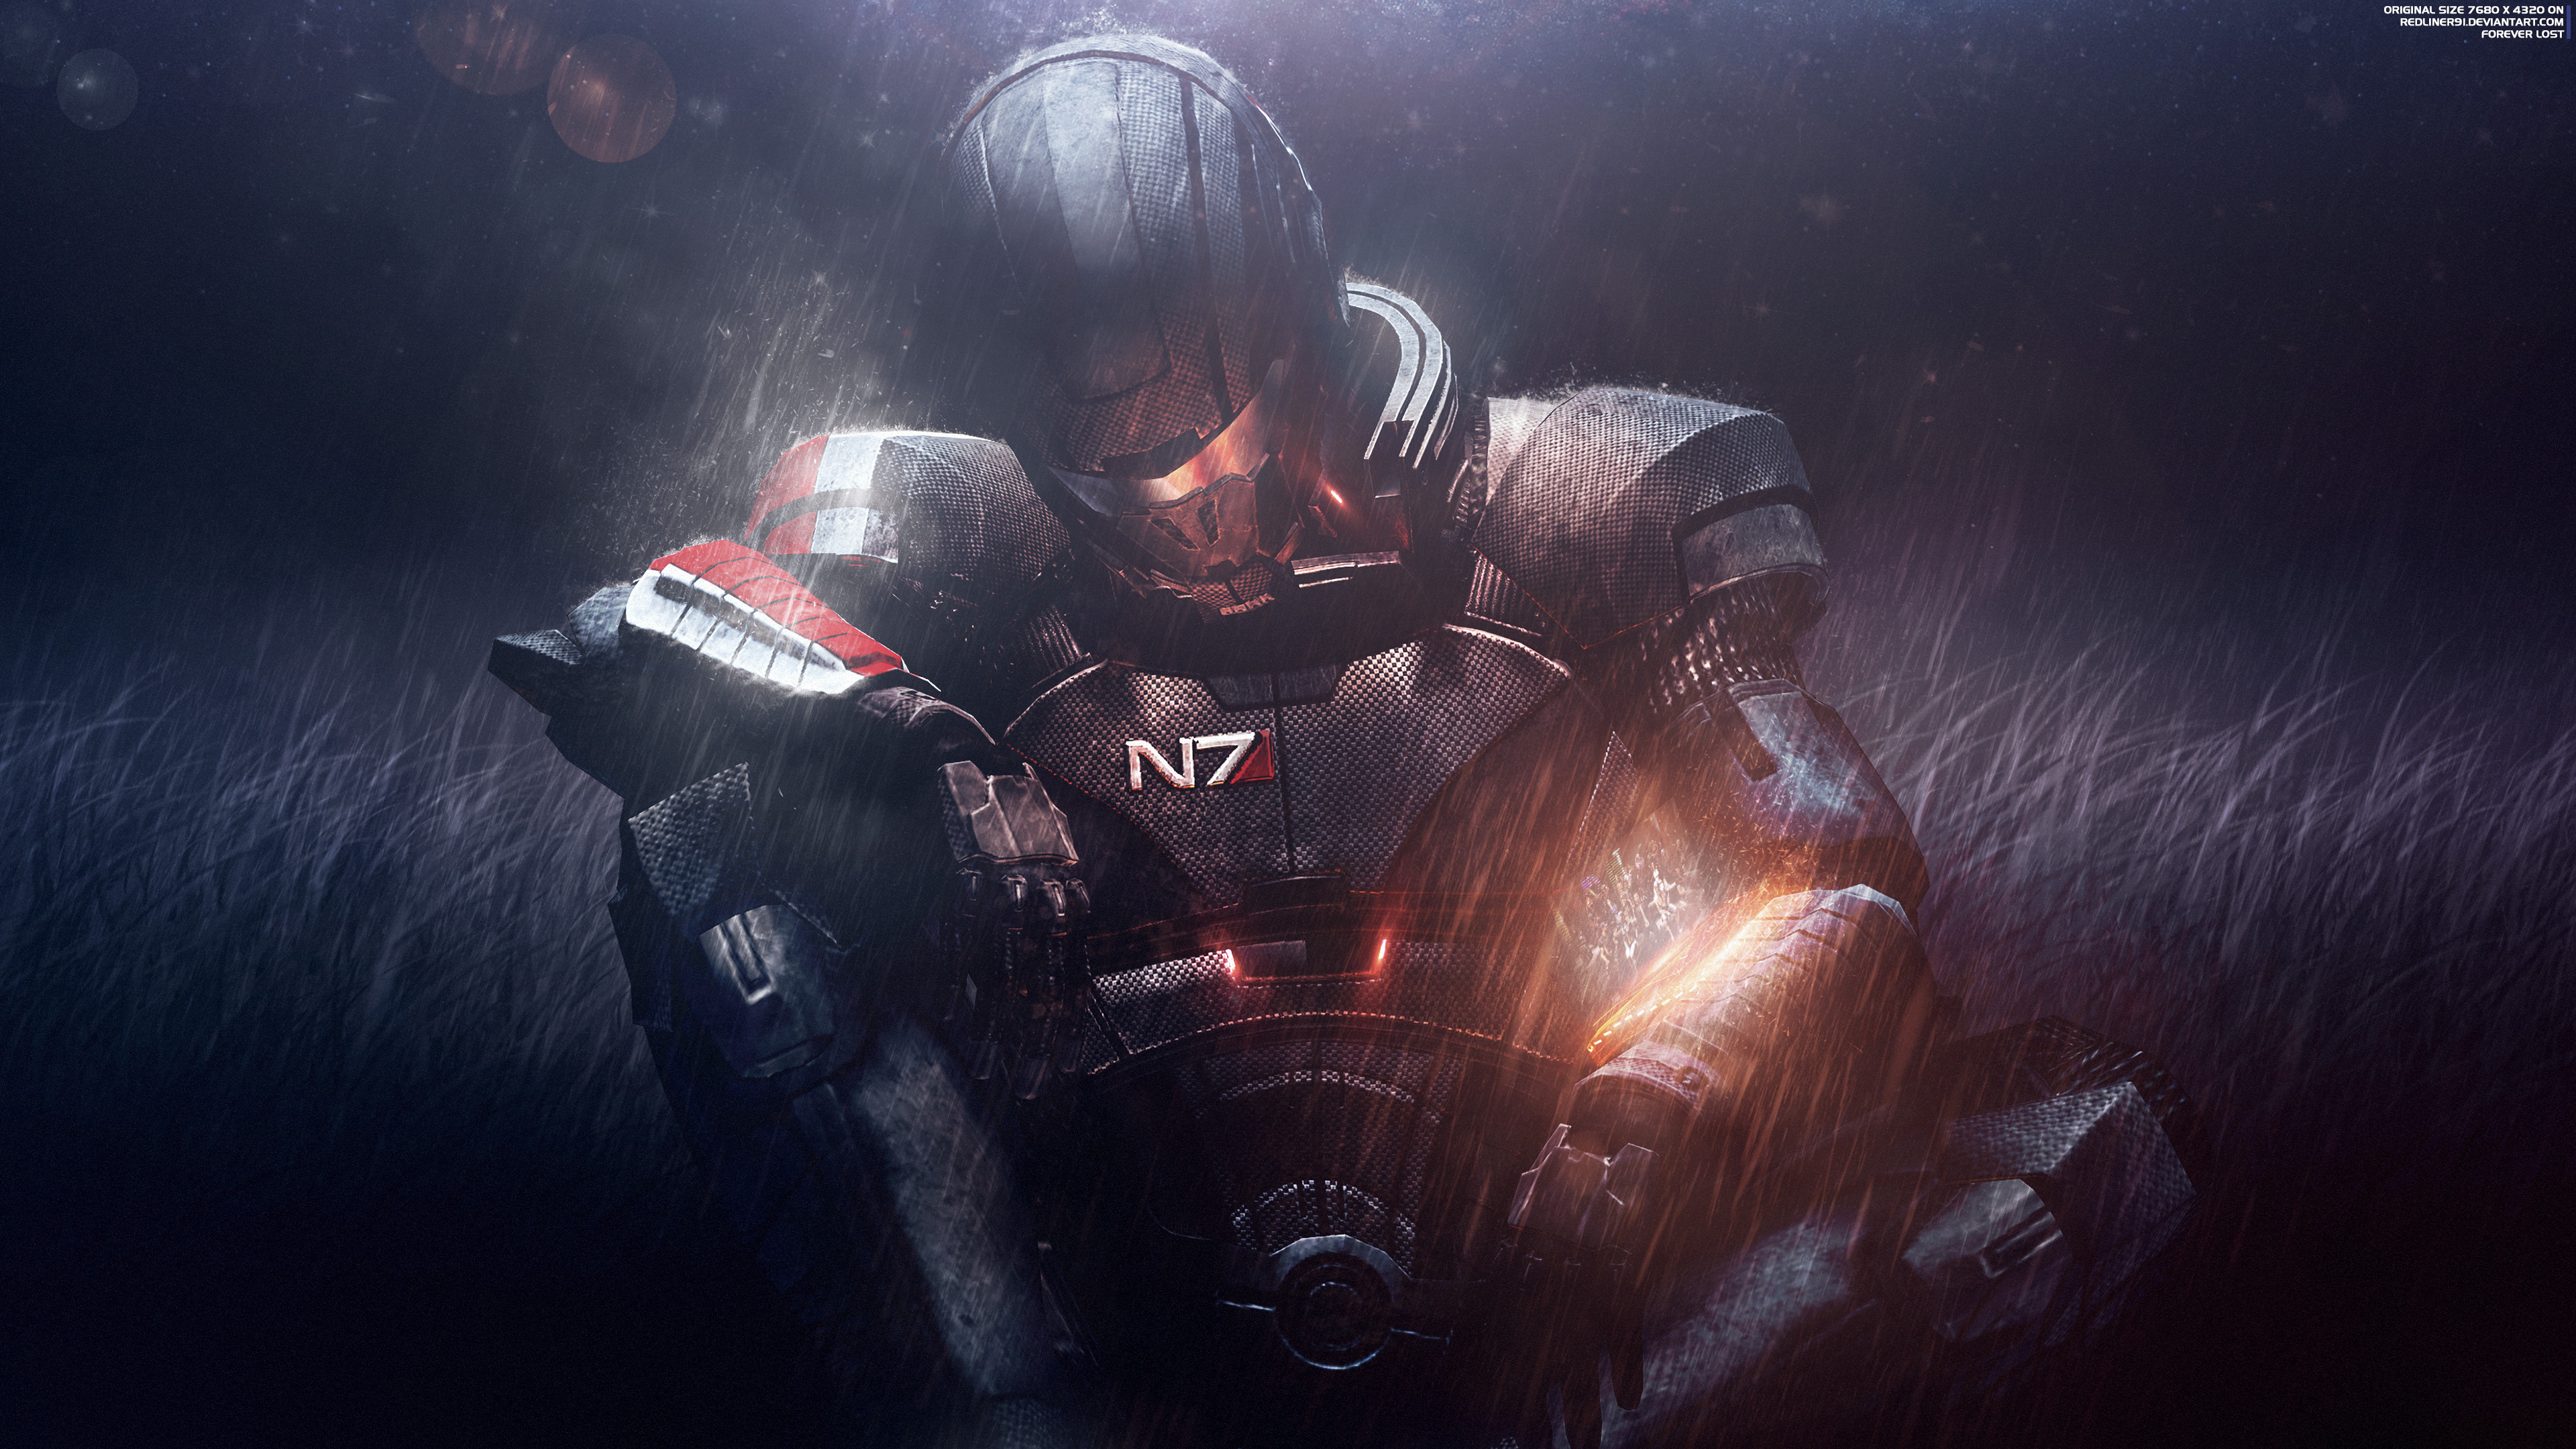 Forever Lost - Mass Effect Trilogy [4K] : wallpapers